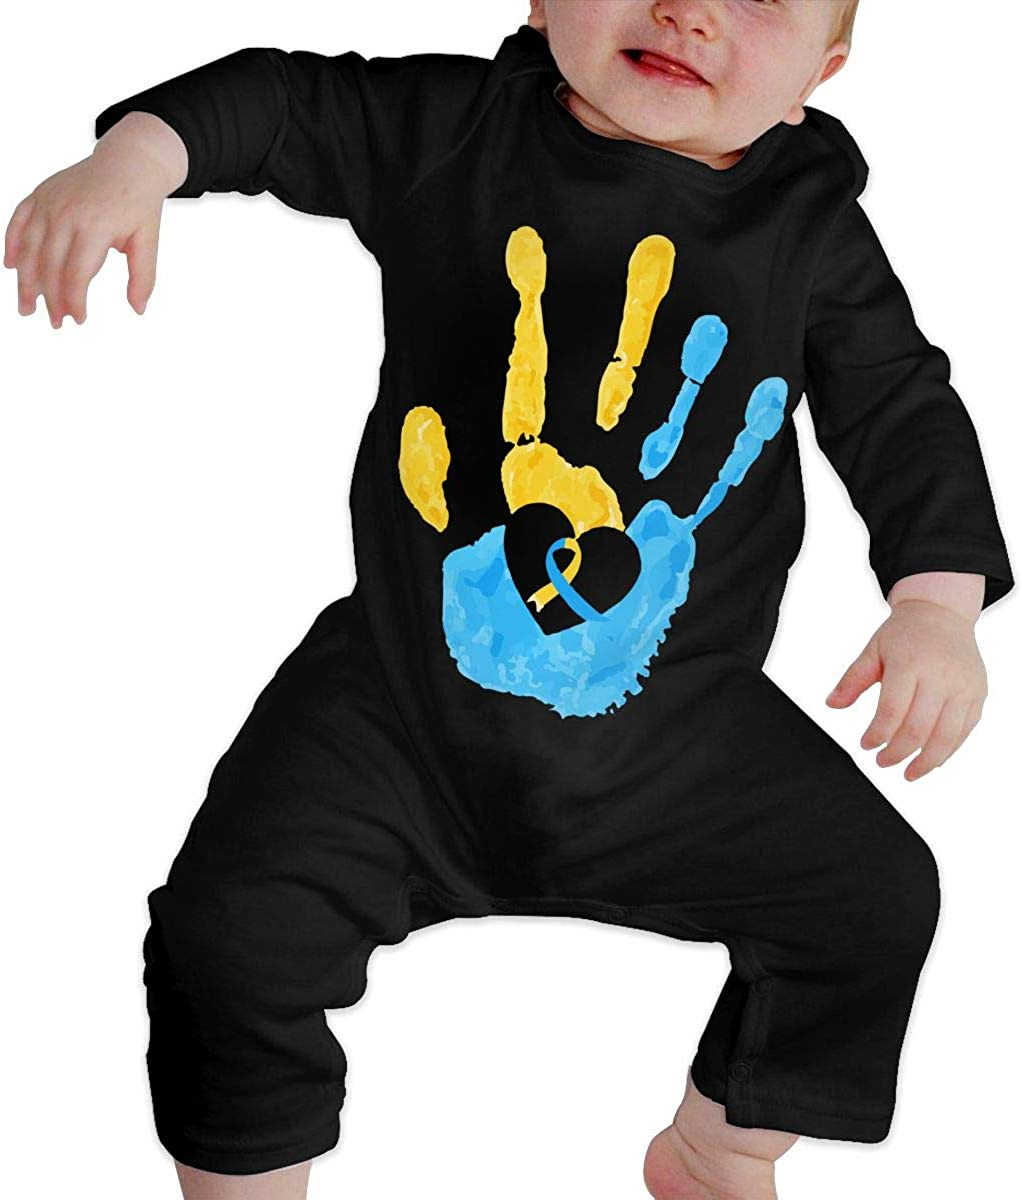 Baby Girls Romper Jumpsuit Down Syndrome Awareness Organic One-Piece Bodysuits Coverall Outfits